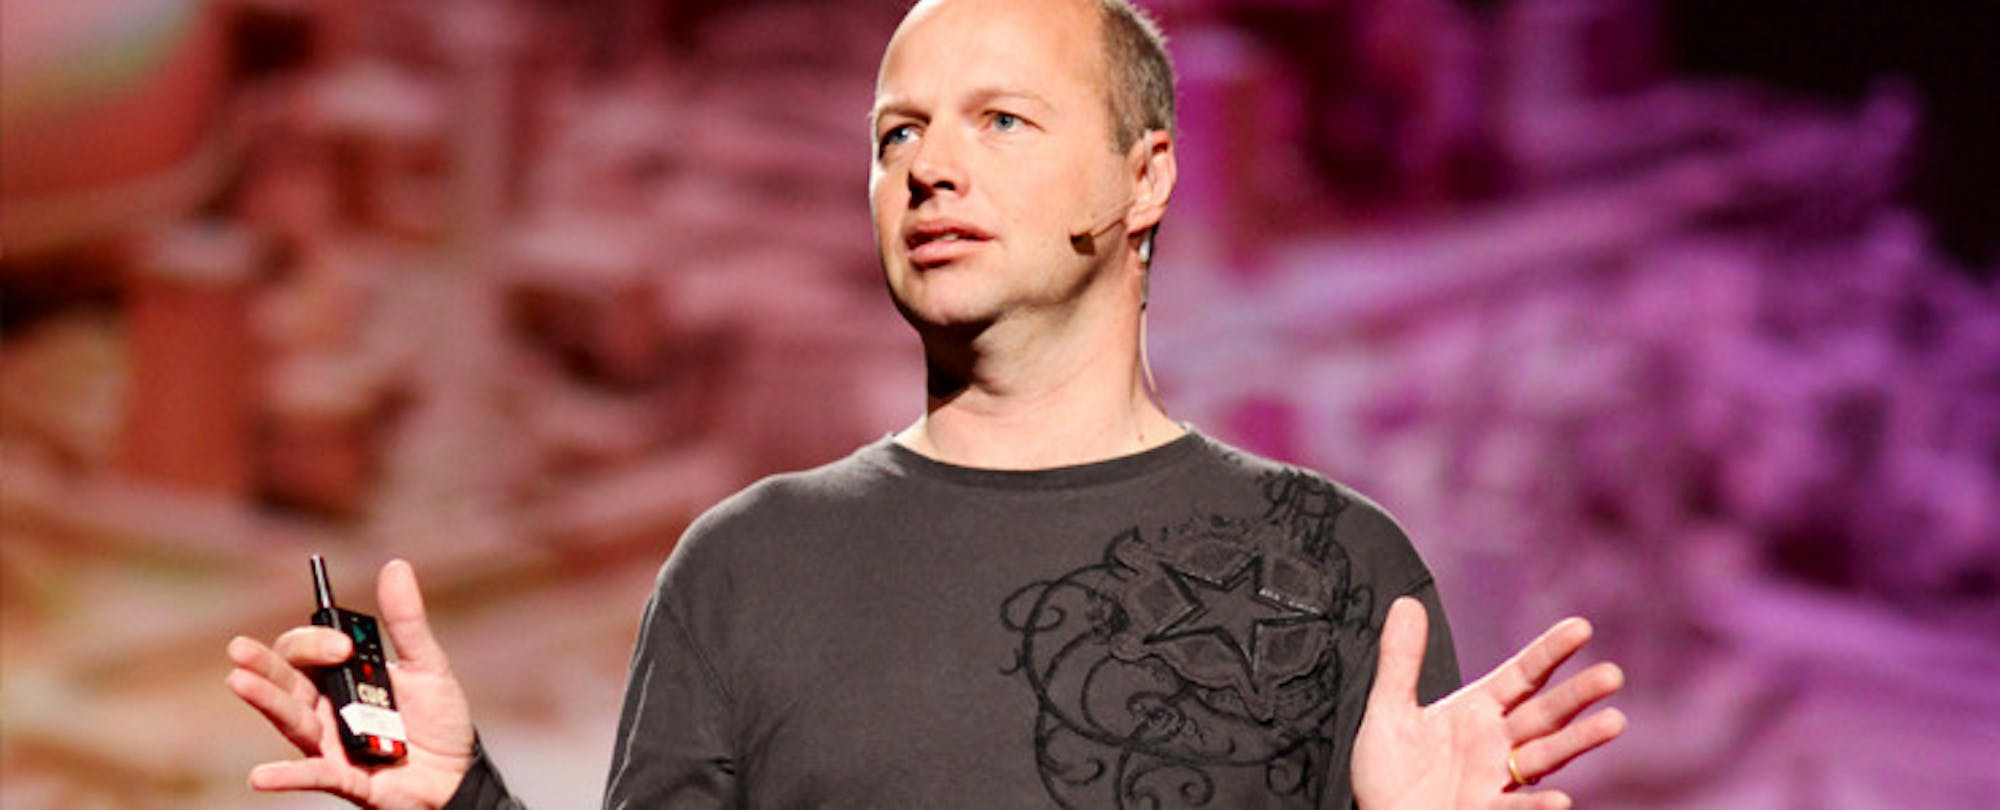 Udacity's Sebastian Thrun On the Future of Education